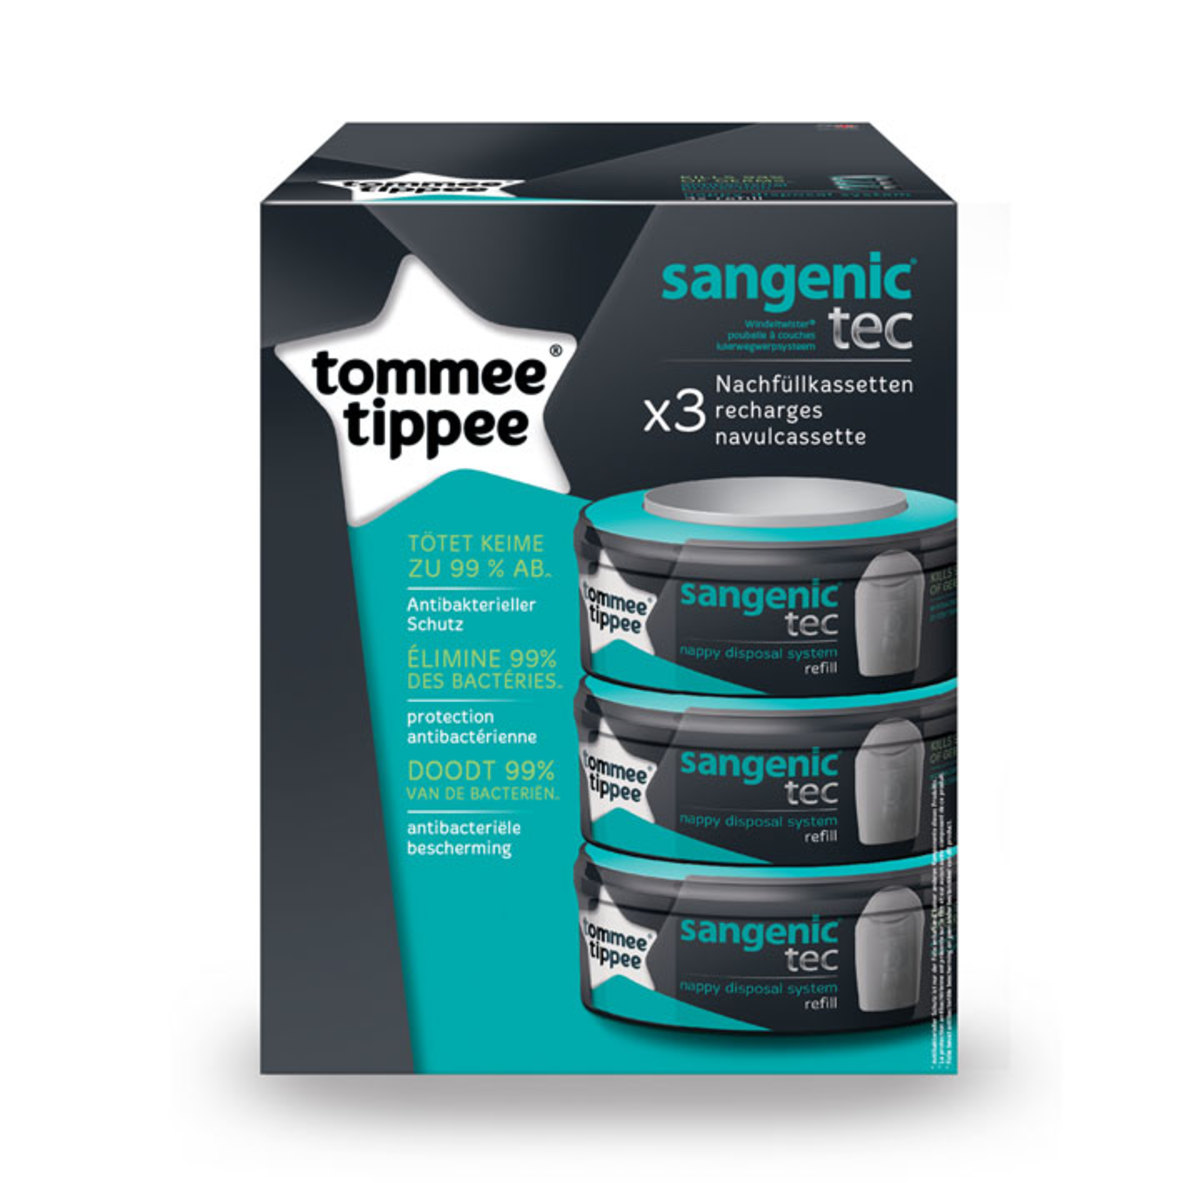 Tommee tippee recharge pour poubelle couches tec sangenic x 3 couche tommee tippee sur l - Recharges poubelle a couches sangenic ...